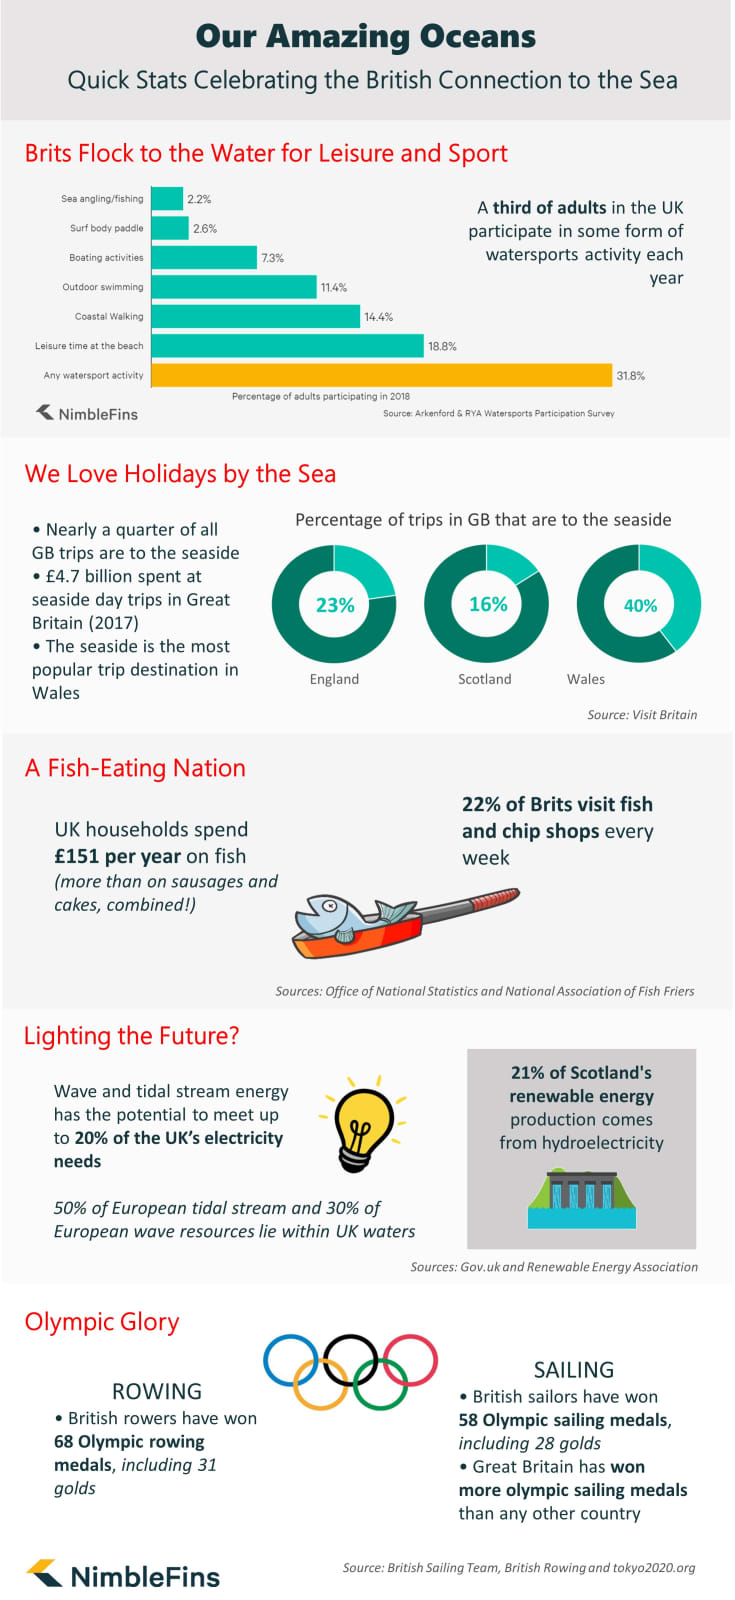 Infographic showing UK and Ocean statistics